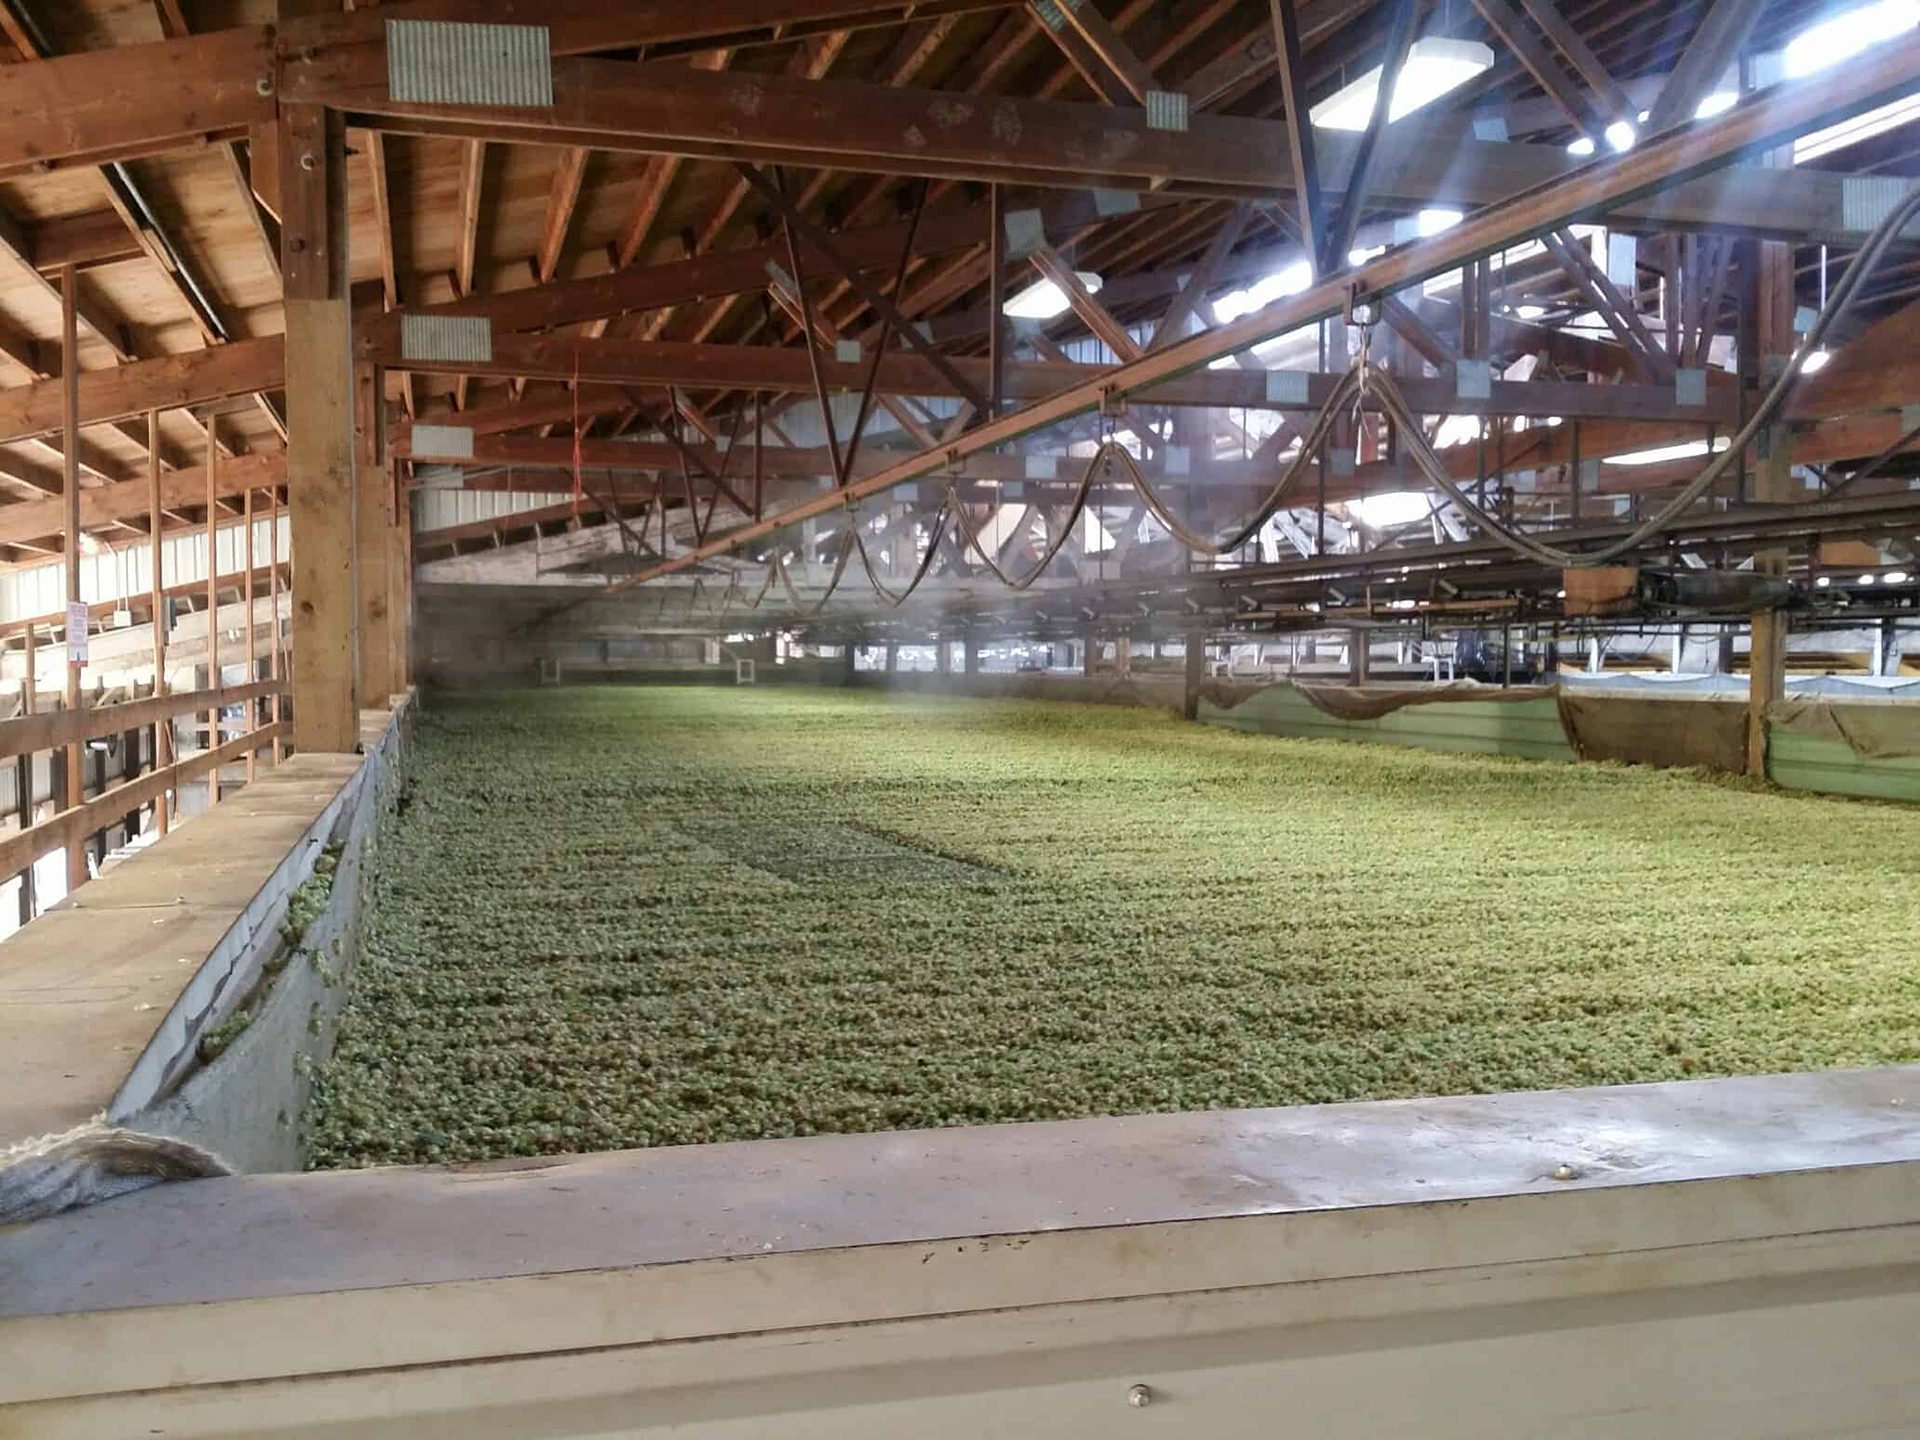 Hops being dried by a new C. J. Hansen Co., Inc. hops dryer